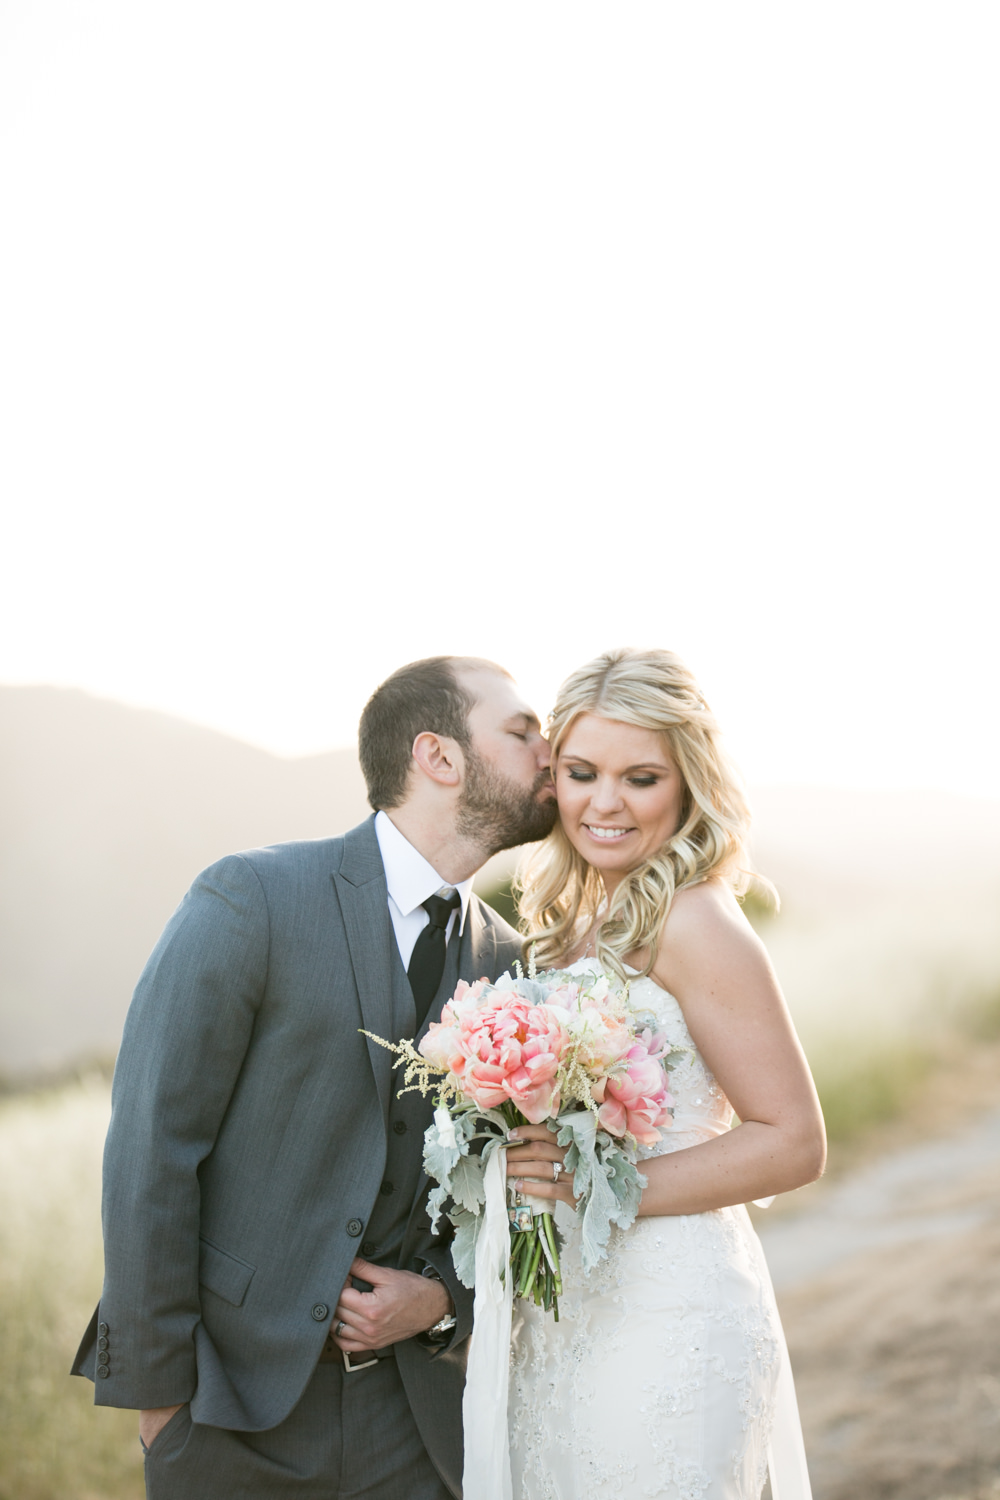 Holman Ranch Wedding Photographer Rachel Howden Photography